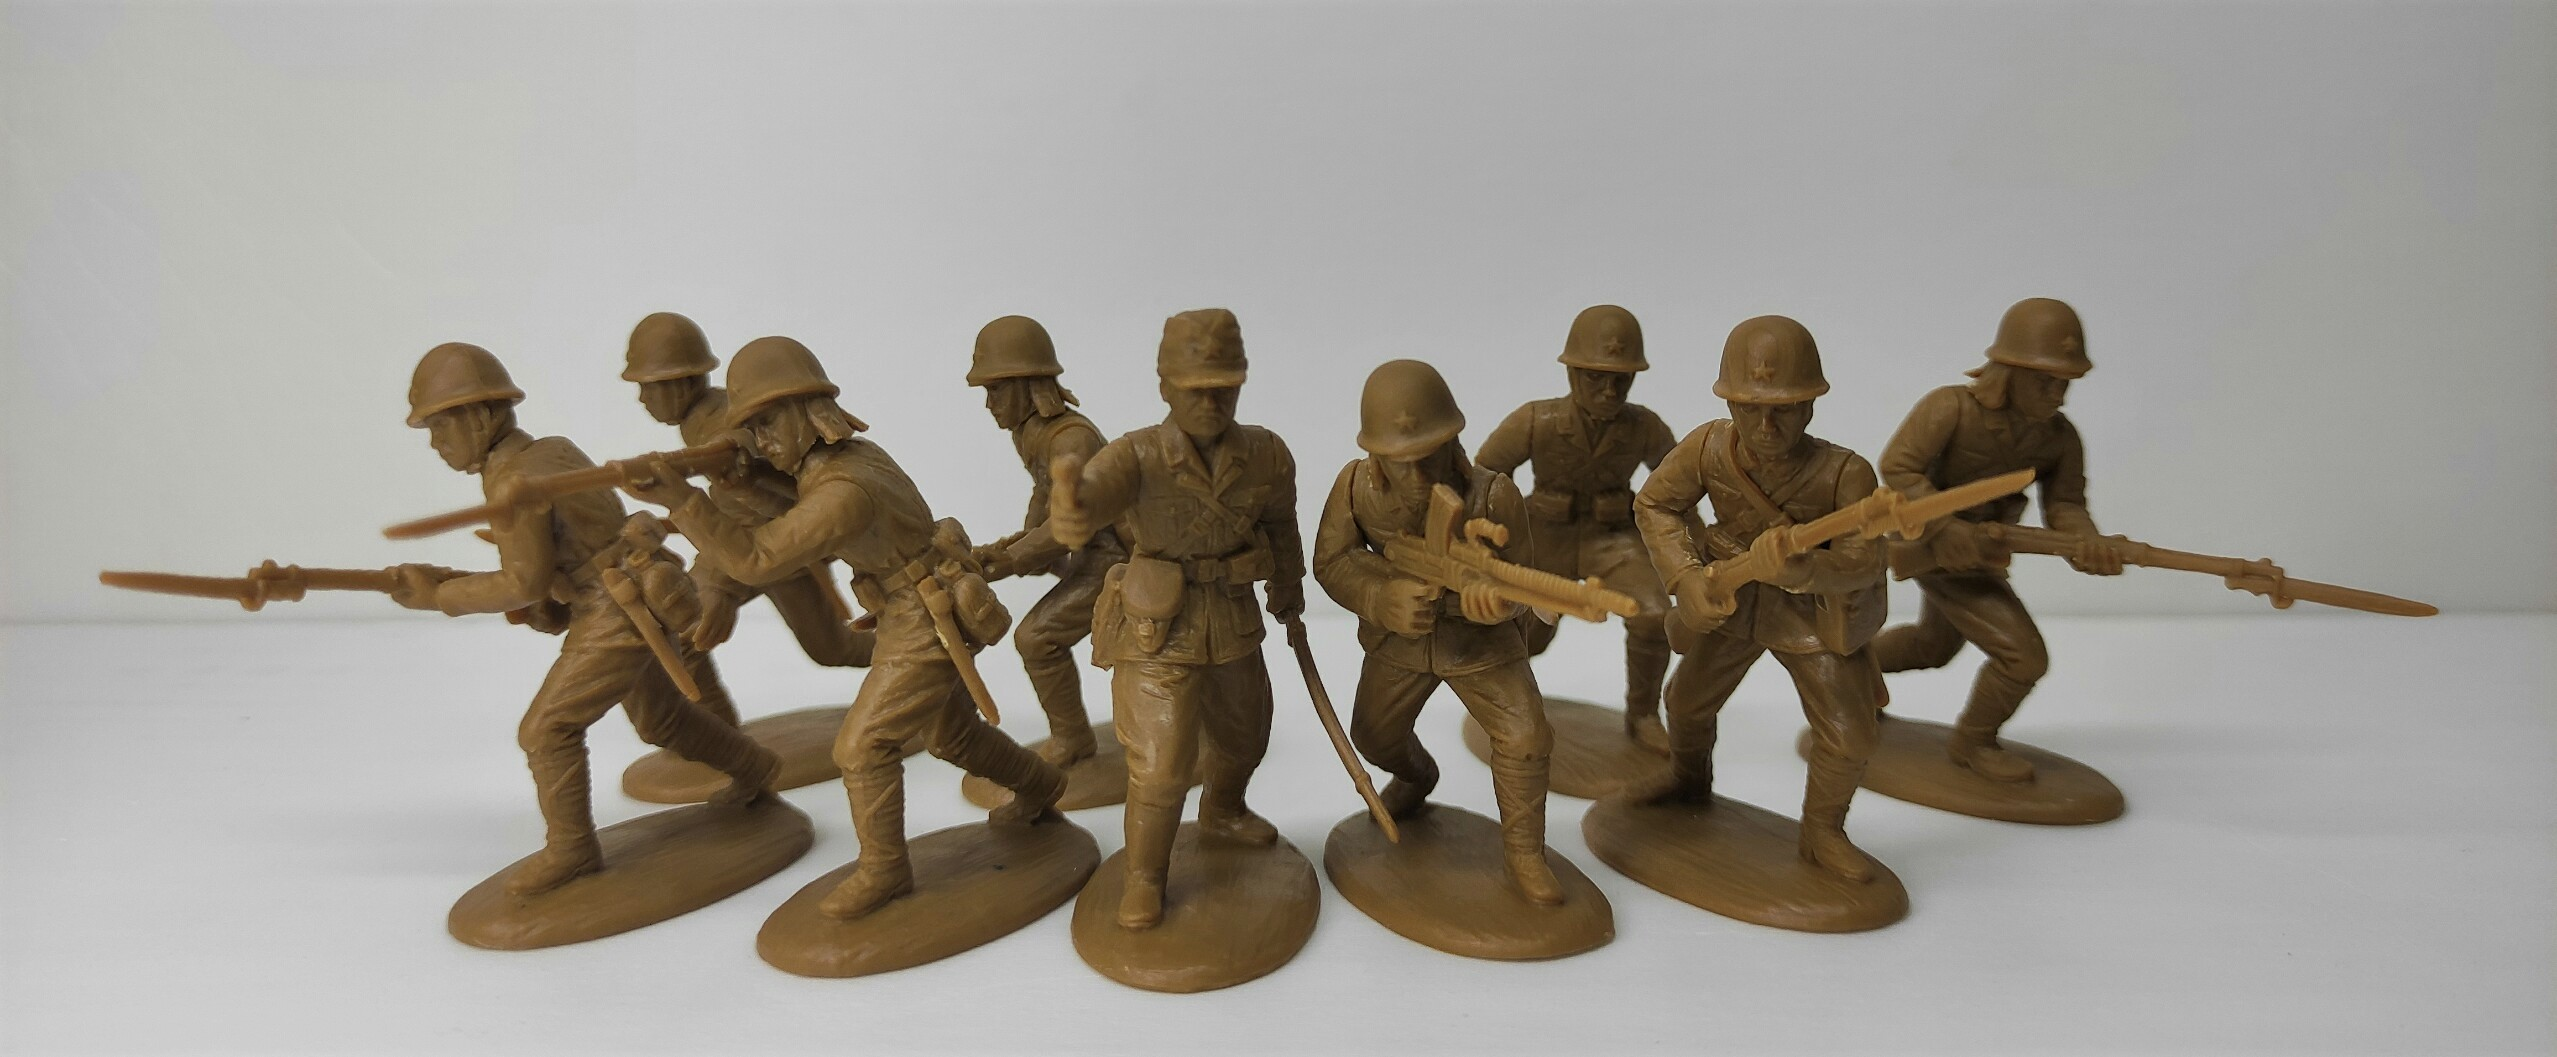 54mm WW2 Pacific War Japanese